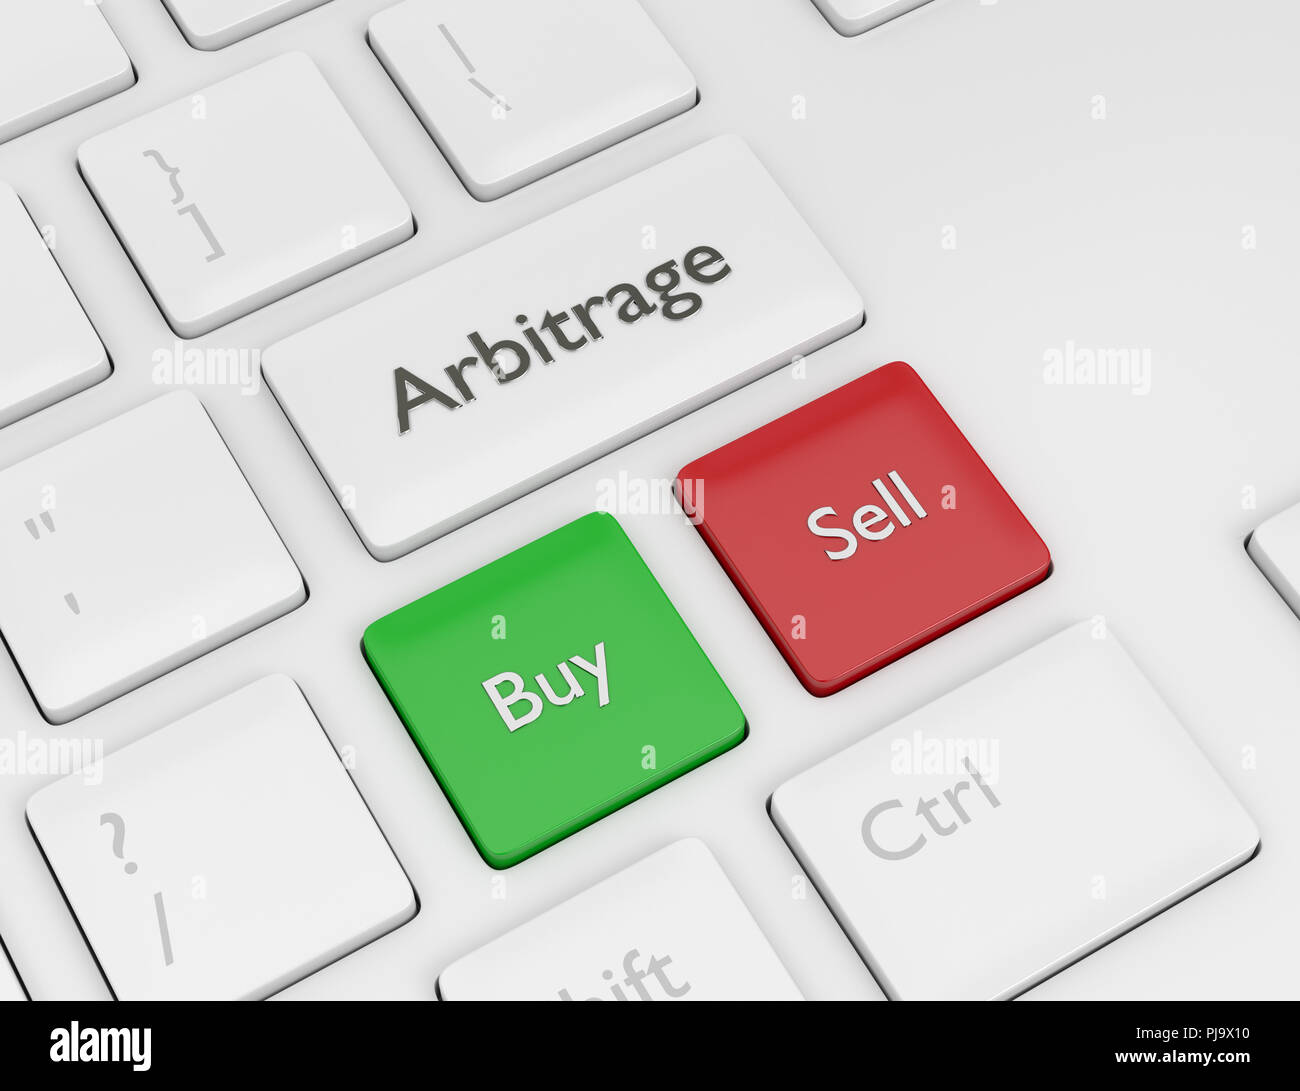 3d render of computer keyboard with ARBITRAGE button. Stock market issue concept - Stock Image